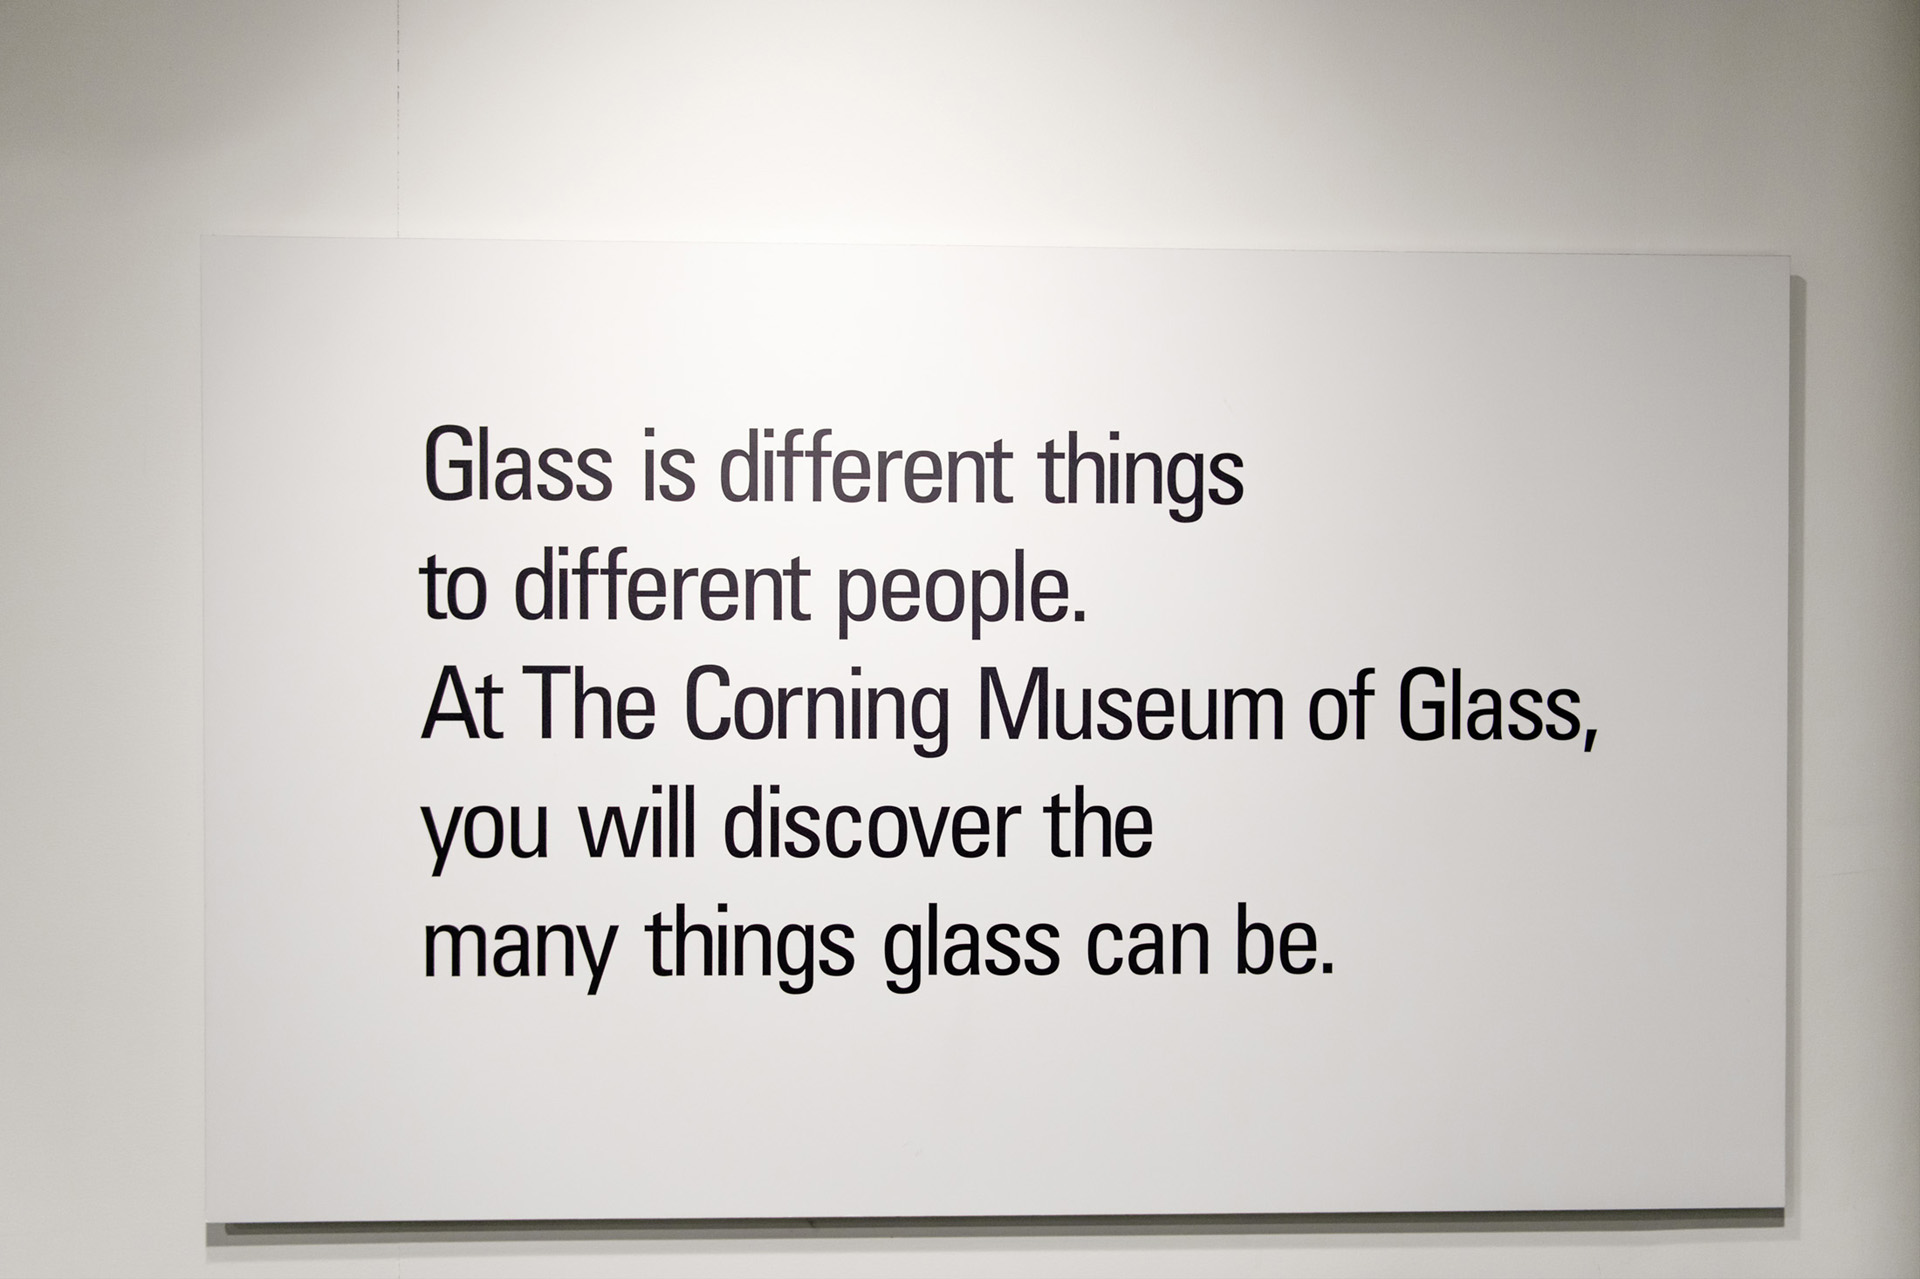 Glass is different thing to different people. At The Corning Museum of Glass, you will discover the many things glass can be.